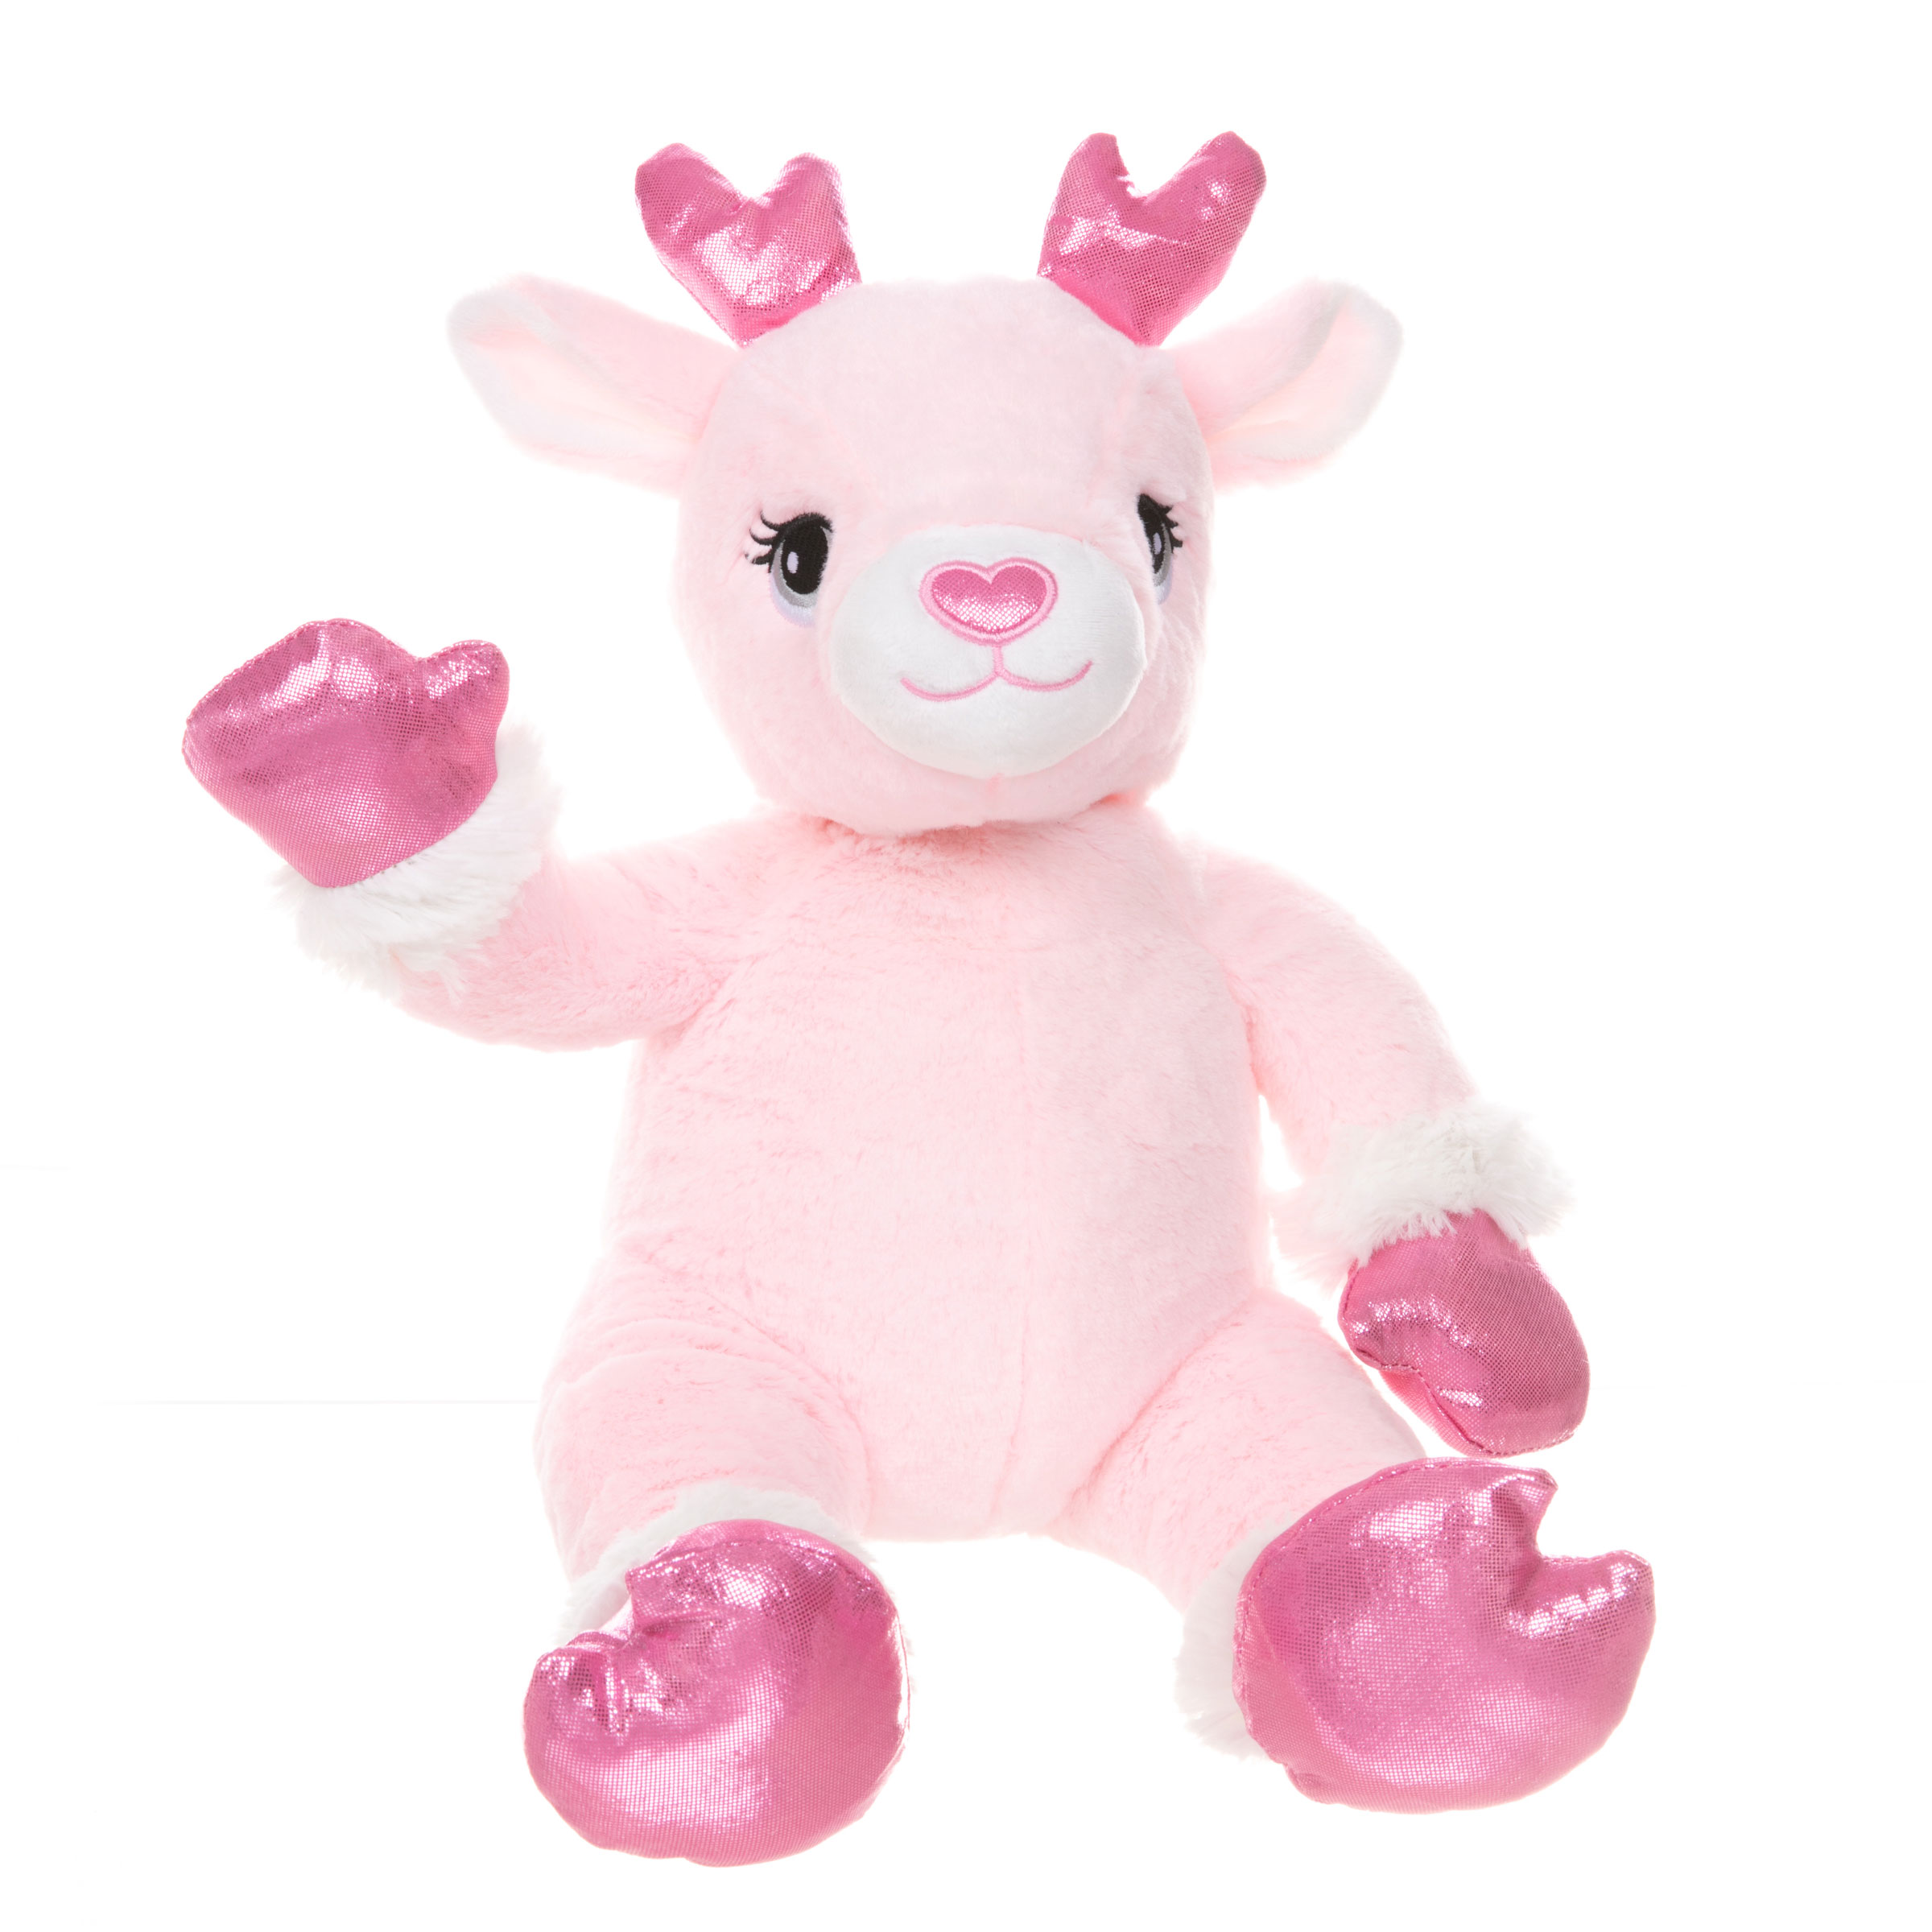 Cupid the Pink Reindeer Teddy Bear